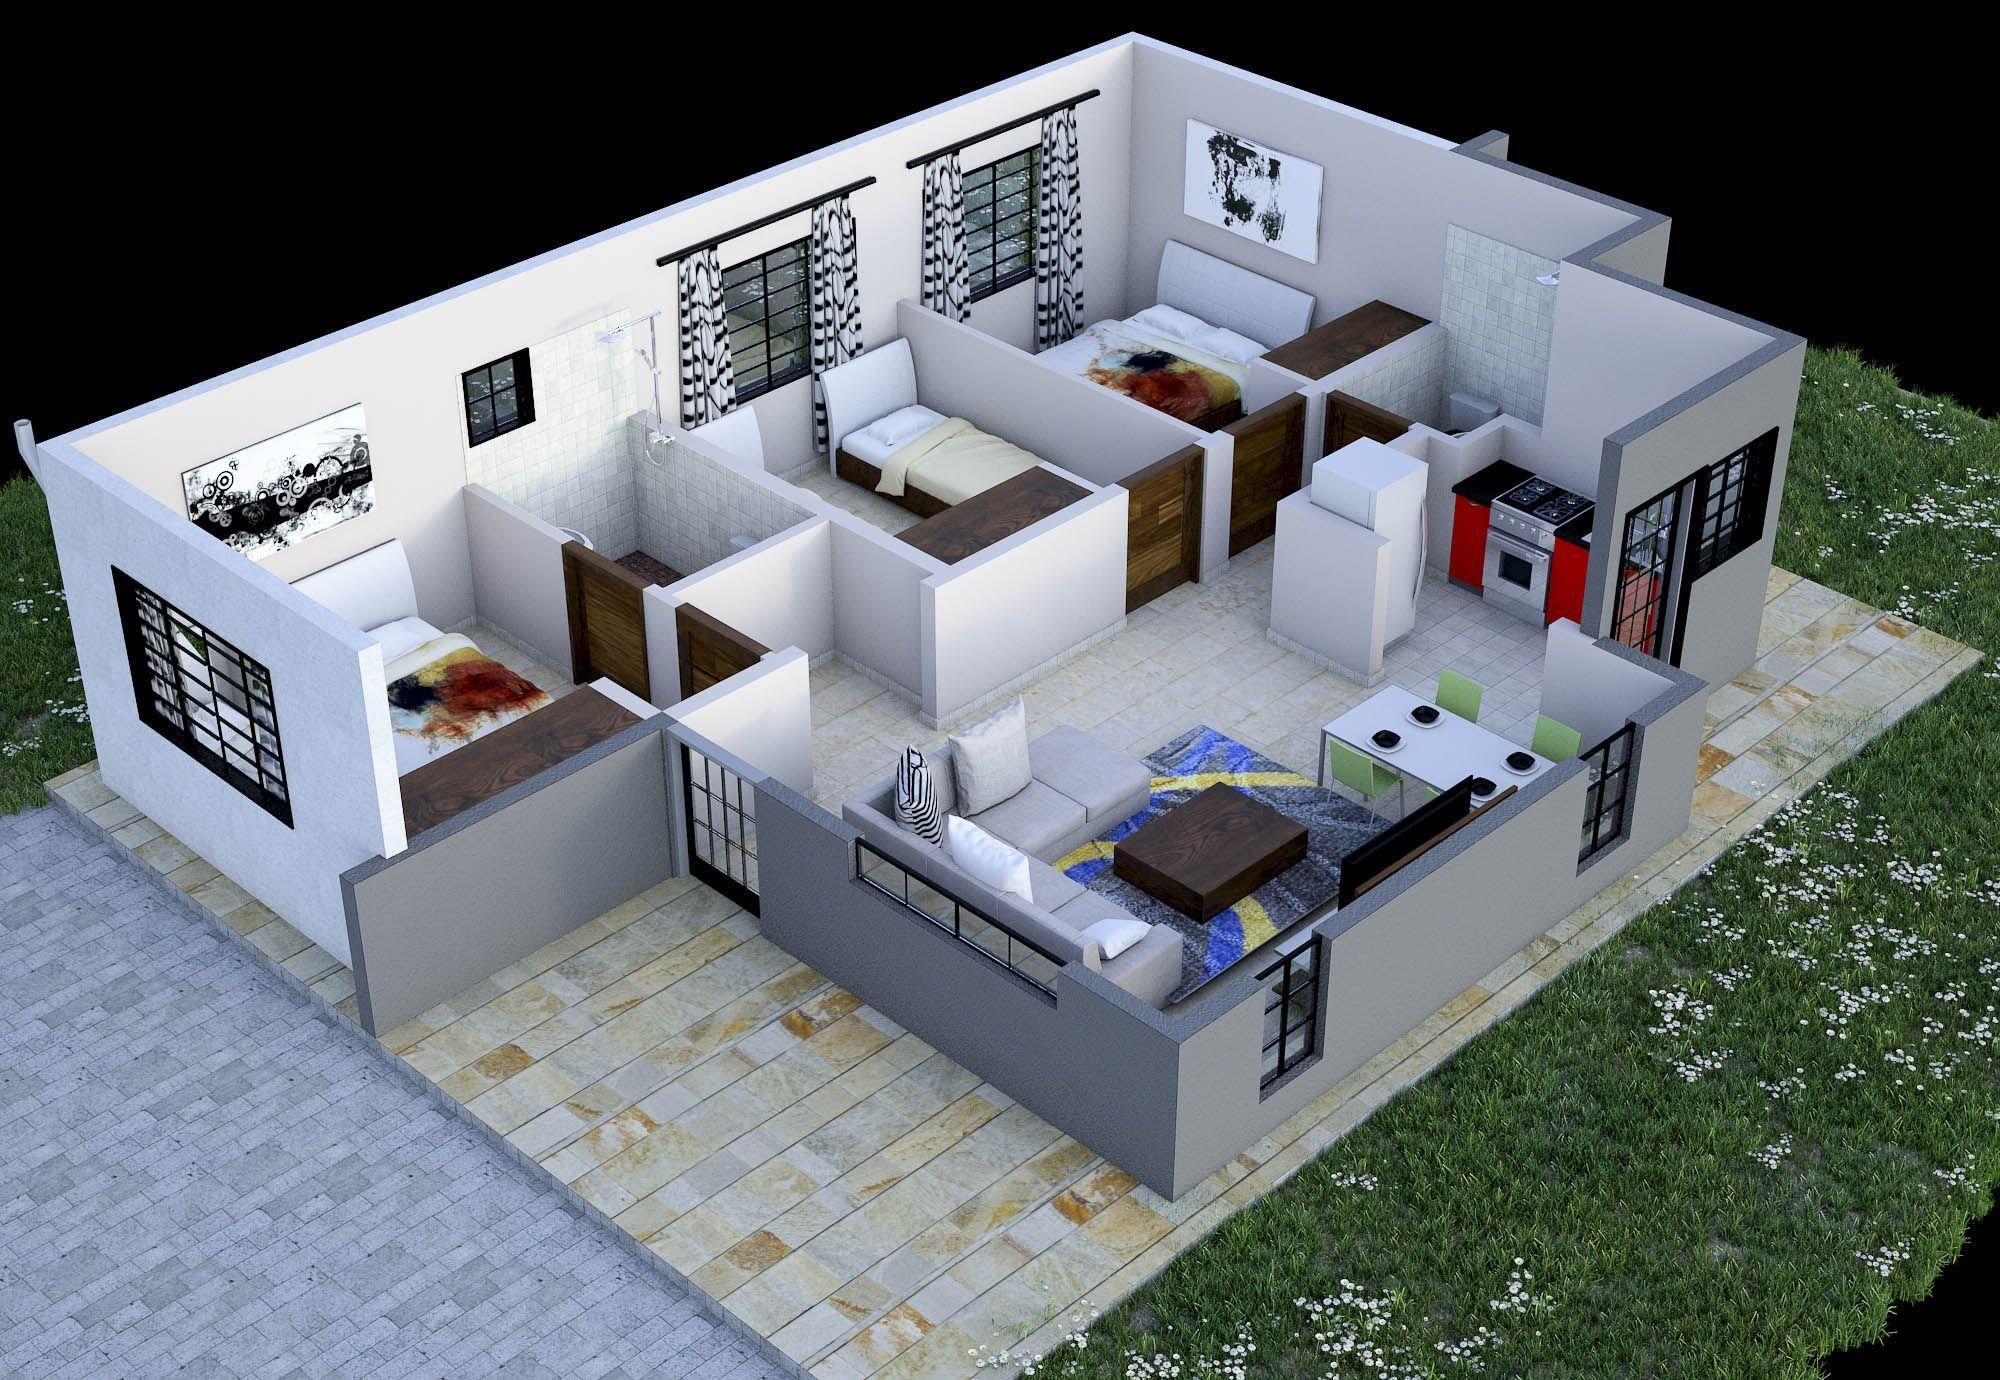 38 Plan Maison Kenya My House Plans House Design Design